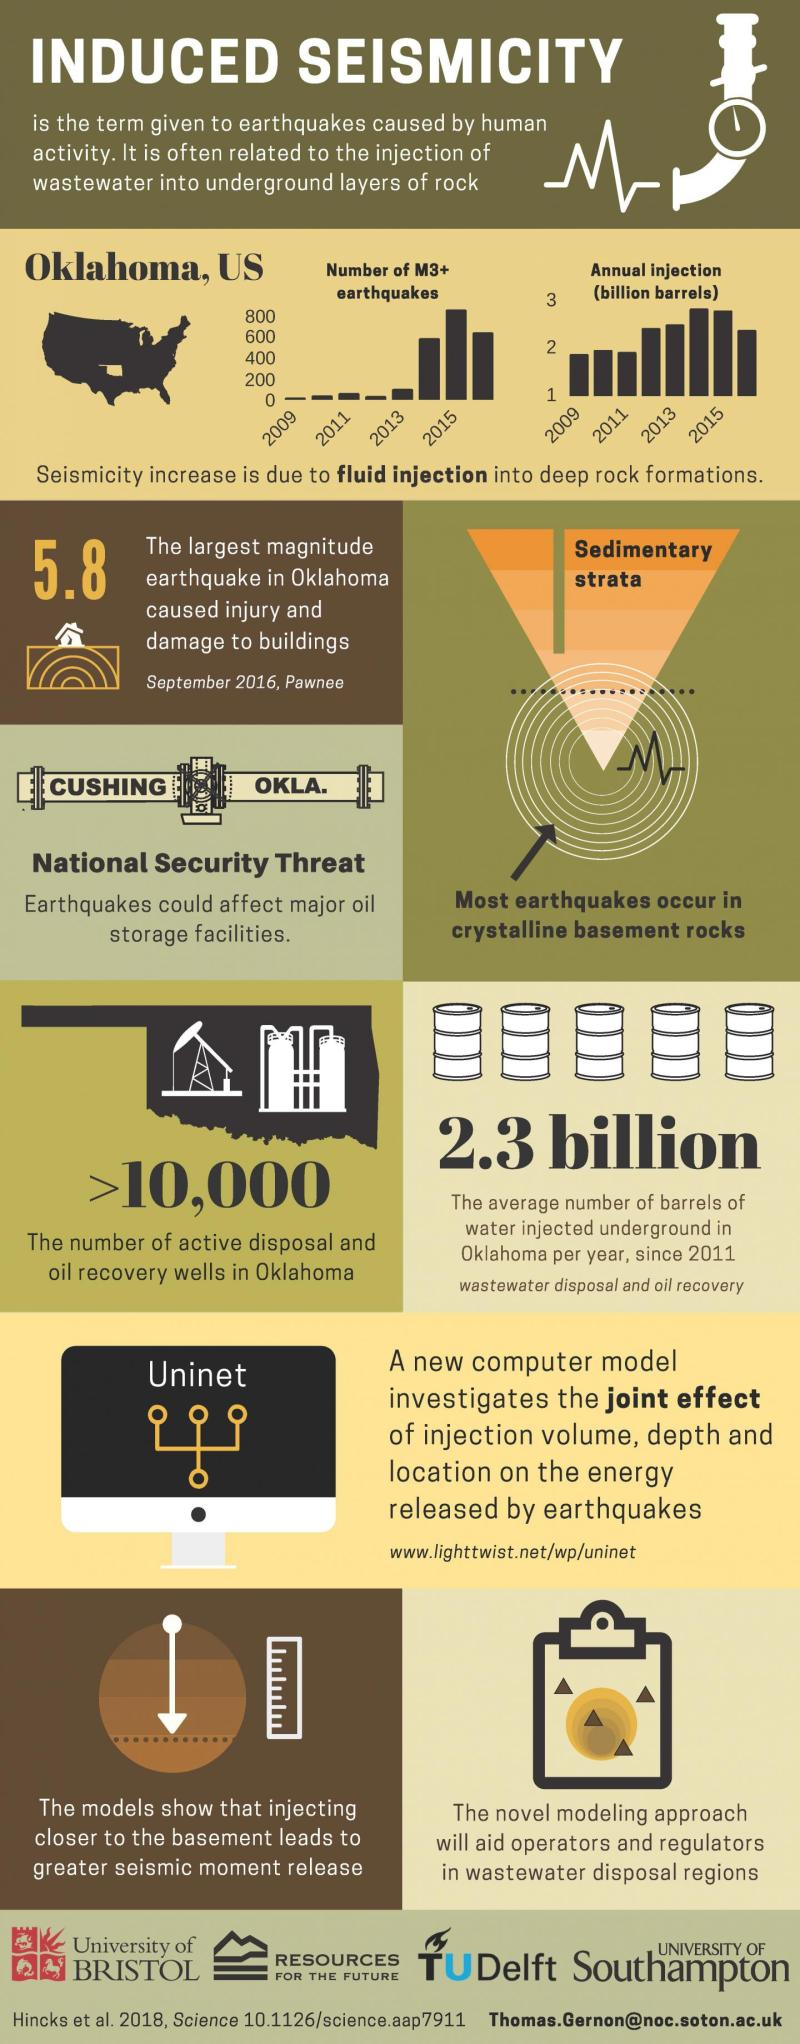 """An infographic showing the causes and consequences of induced seismicity in the U.S. State of Oklahoma. This material relates to a paper that appeared in the 2 February 2018 issue of Science, published by AAAS. The paper, by T. Hincks at University of Bristol in Bristol, UK, and colleagues was titled, """"Oklahoma's induced seismicity strongly linked to wastewater injection depth."""" Credit Dr. Thomas Gernon, University of Southampton"""